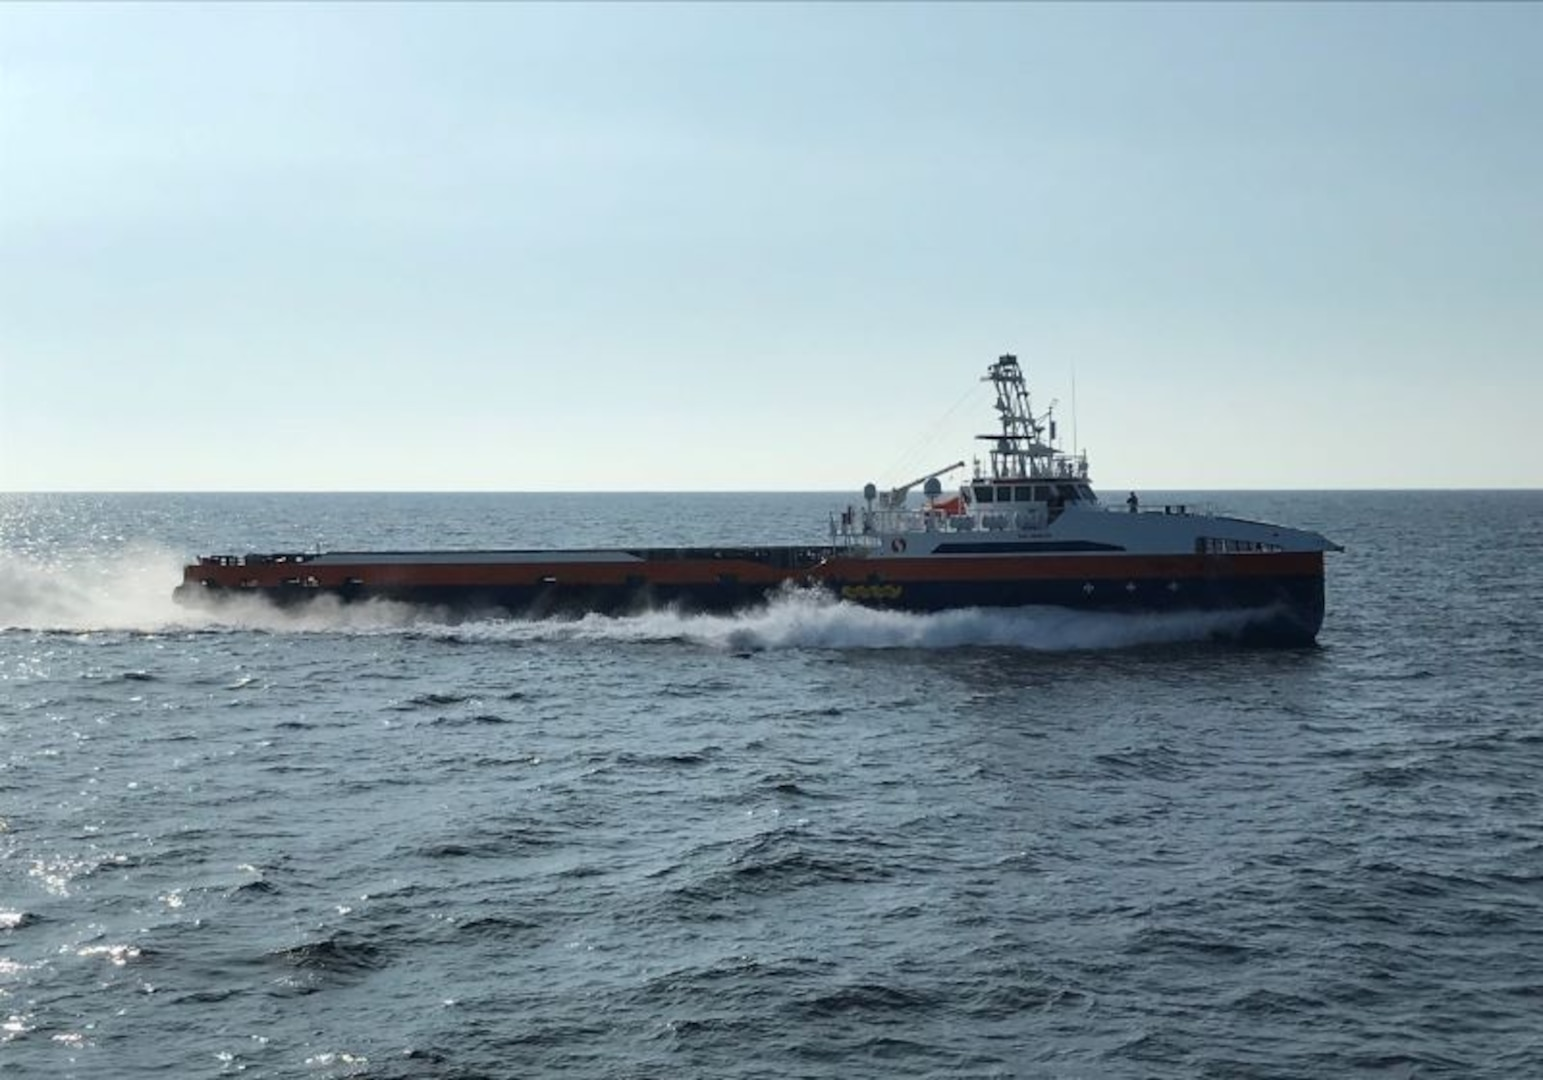 A Ghost Fleet Overlord test vessel takes part in a capstone demonstration during the conclusion of Phase I of the program in September.